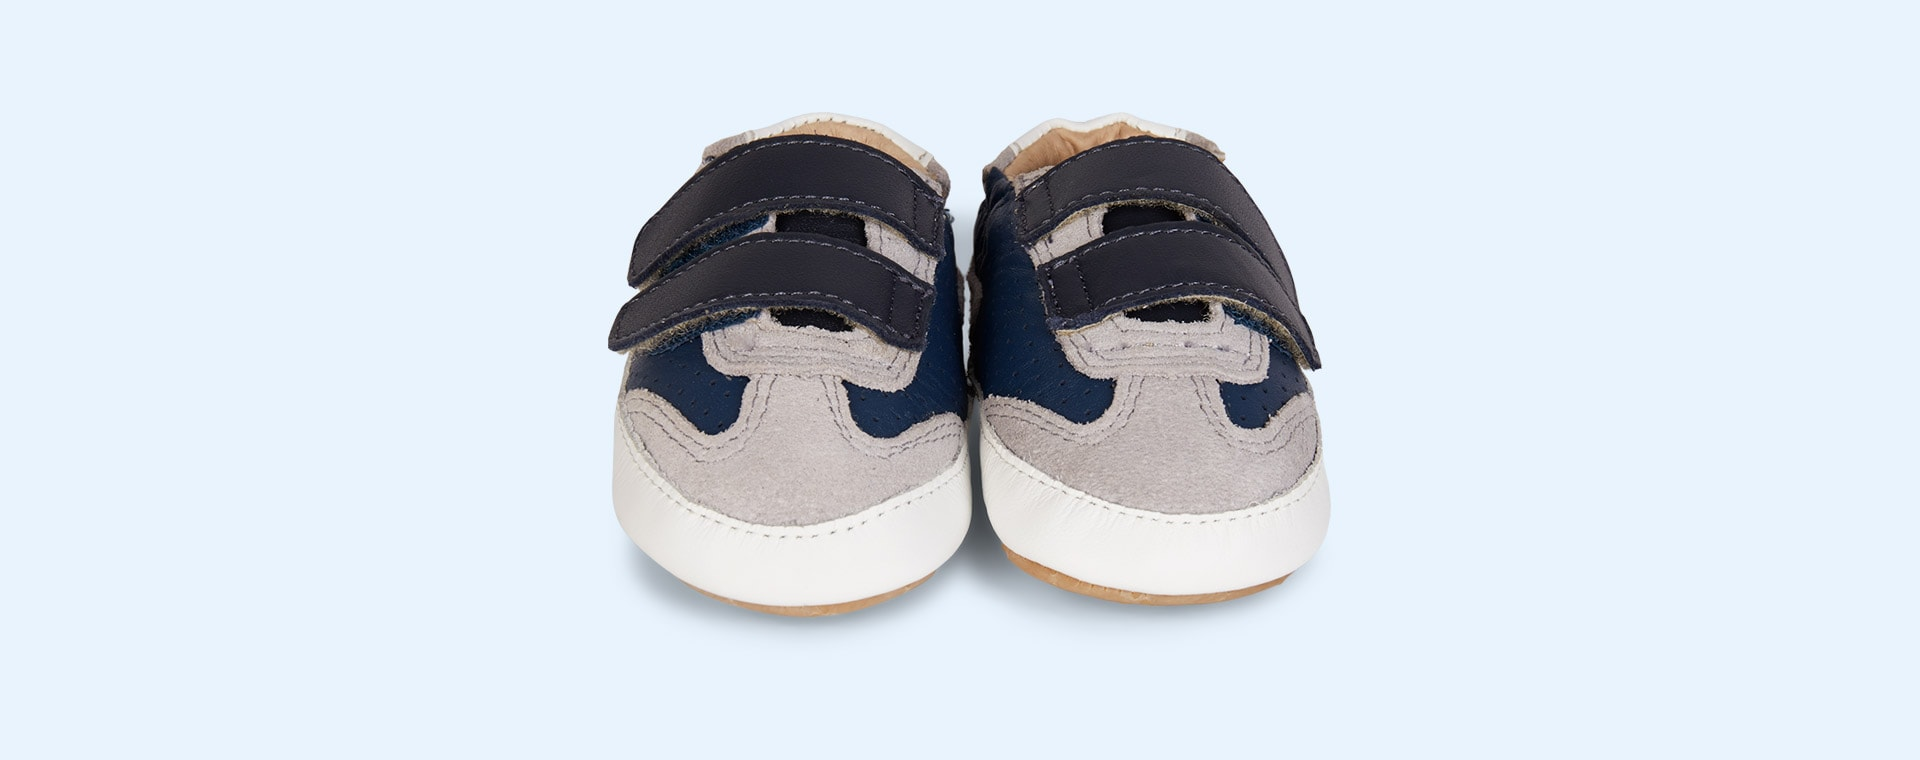 Navy old soles Revival Baby Soft sole shoe